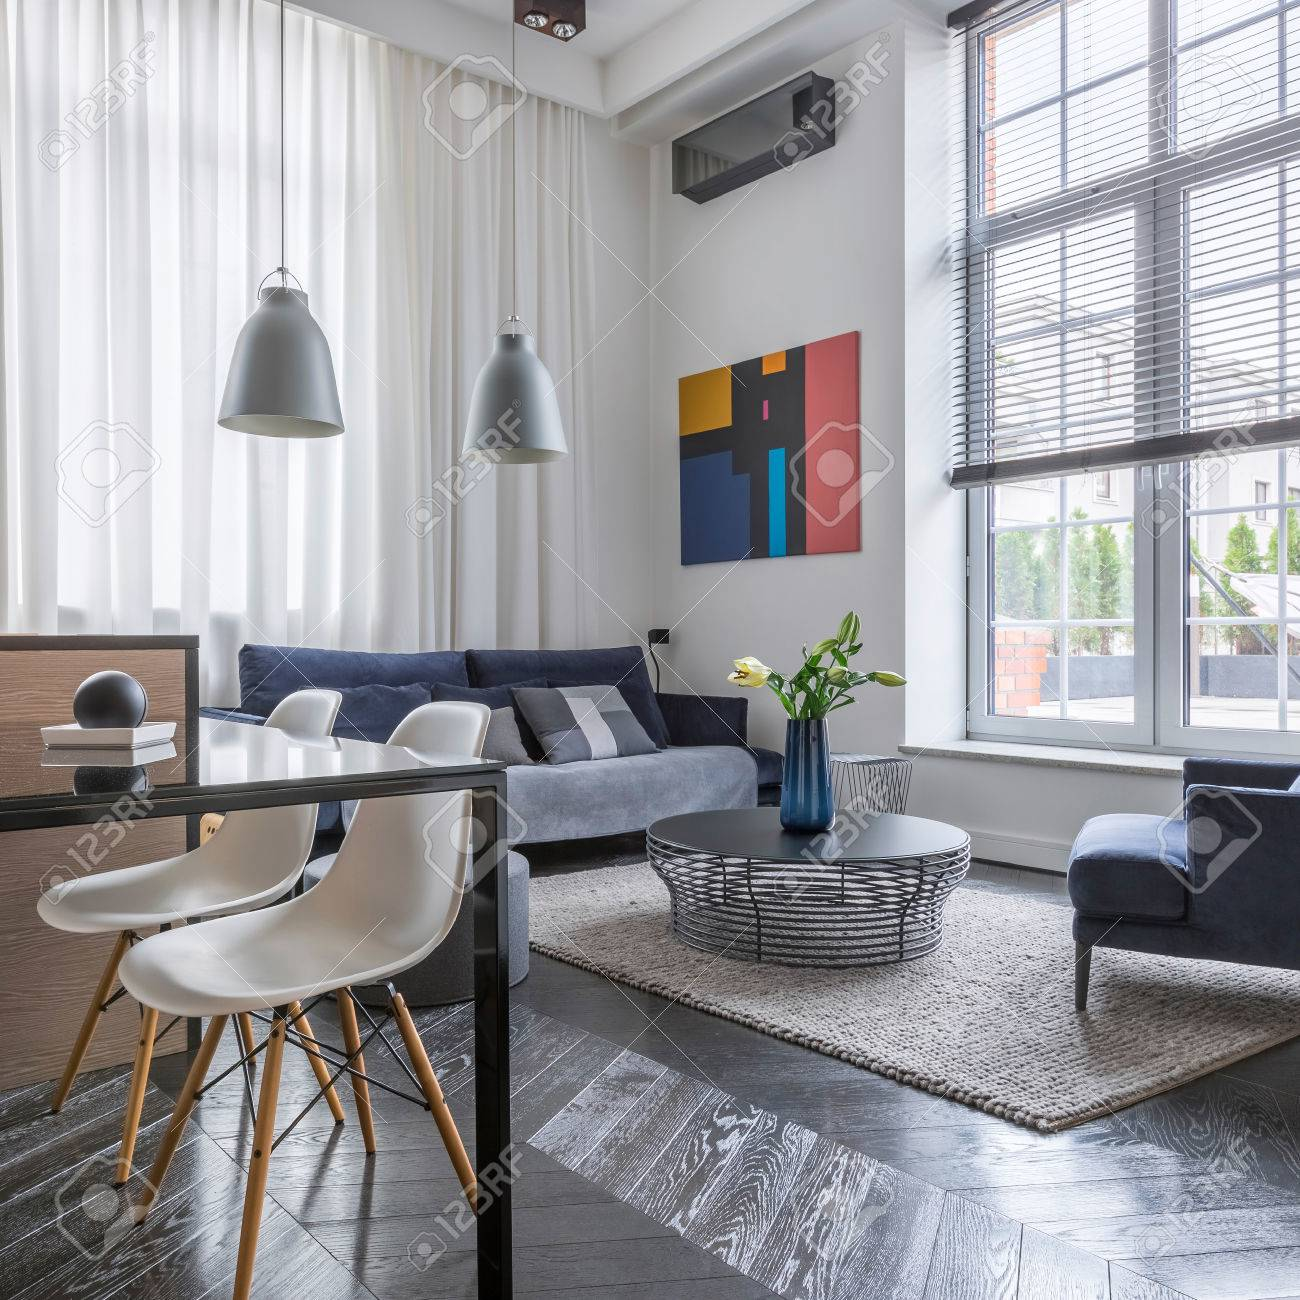 Full Size of Living Room With Armchair Wohnzimmer Wohnzimmer Sessel